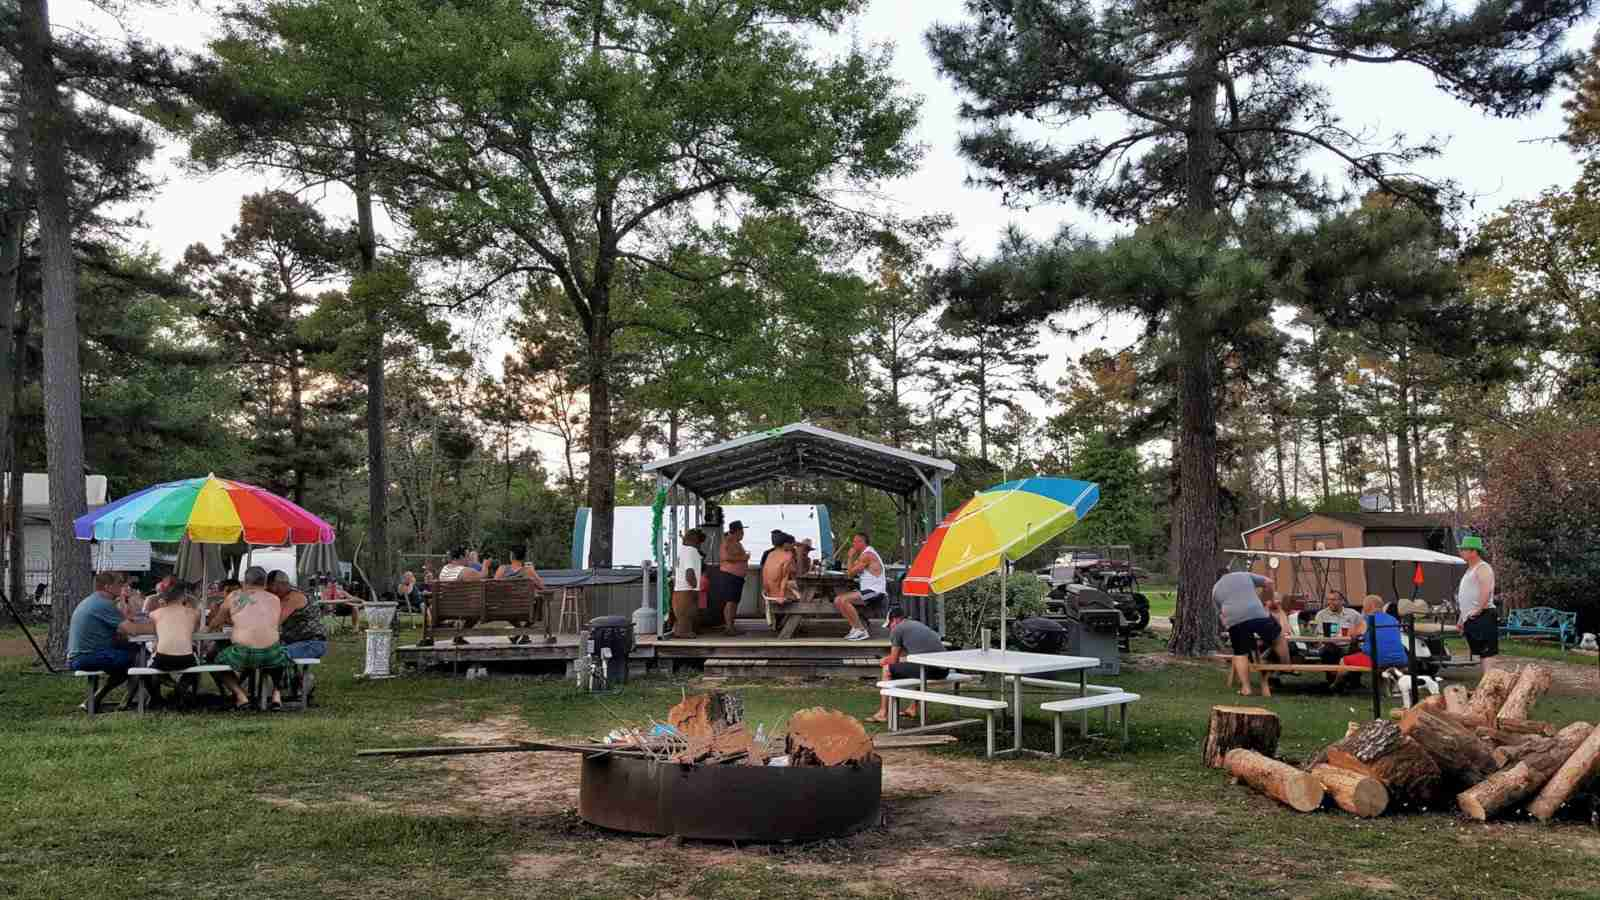 Grizzly Pines is a great gay campground for bears in Texas